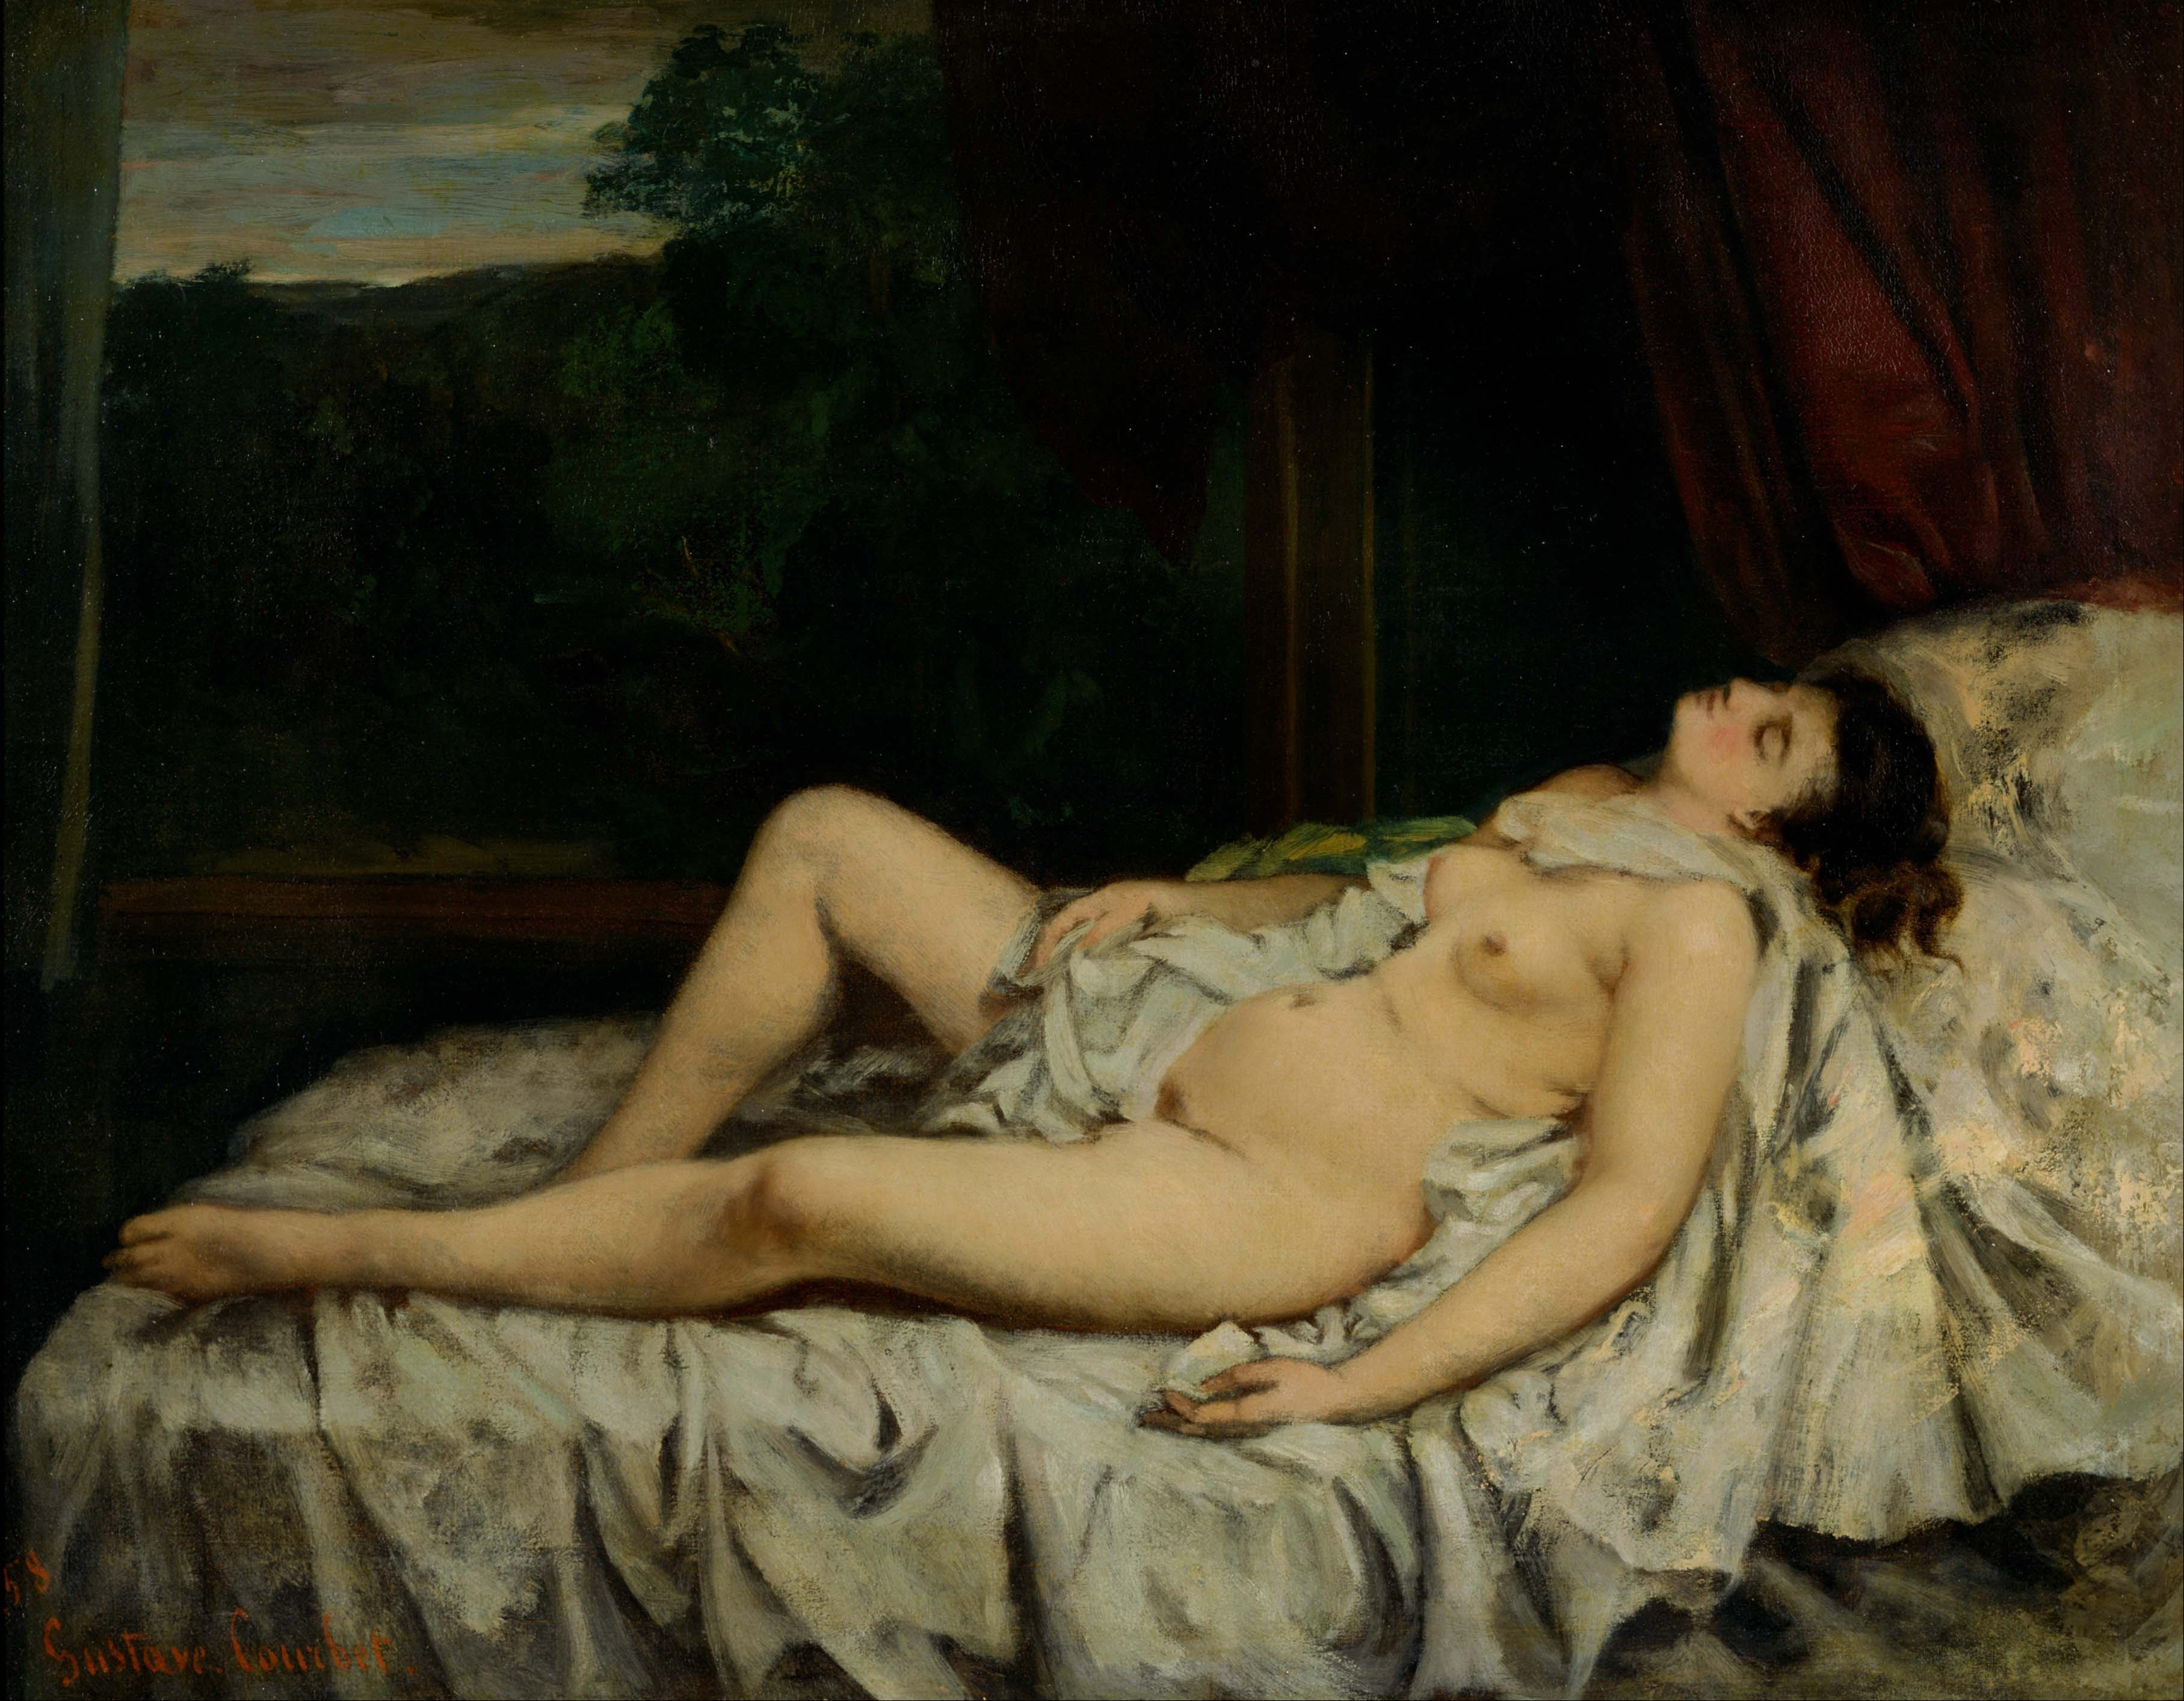 Gustave_Courbet_-_Sleeping_Nude_-_Google_Art_Project